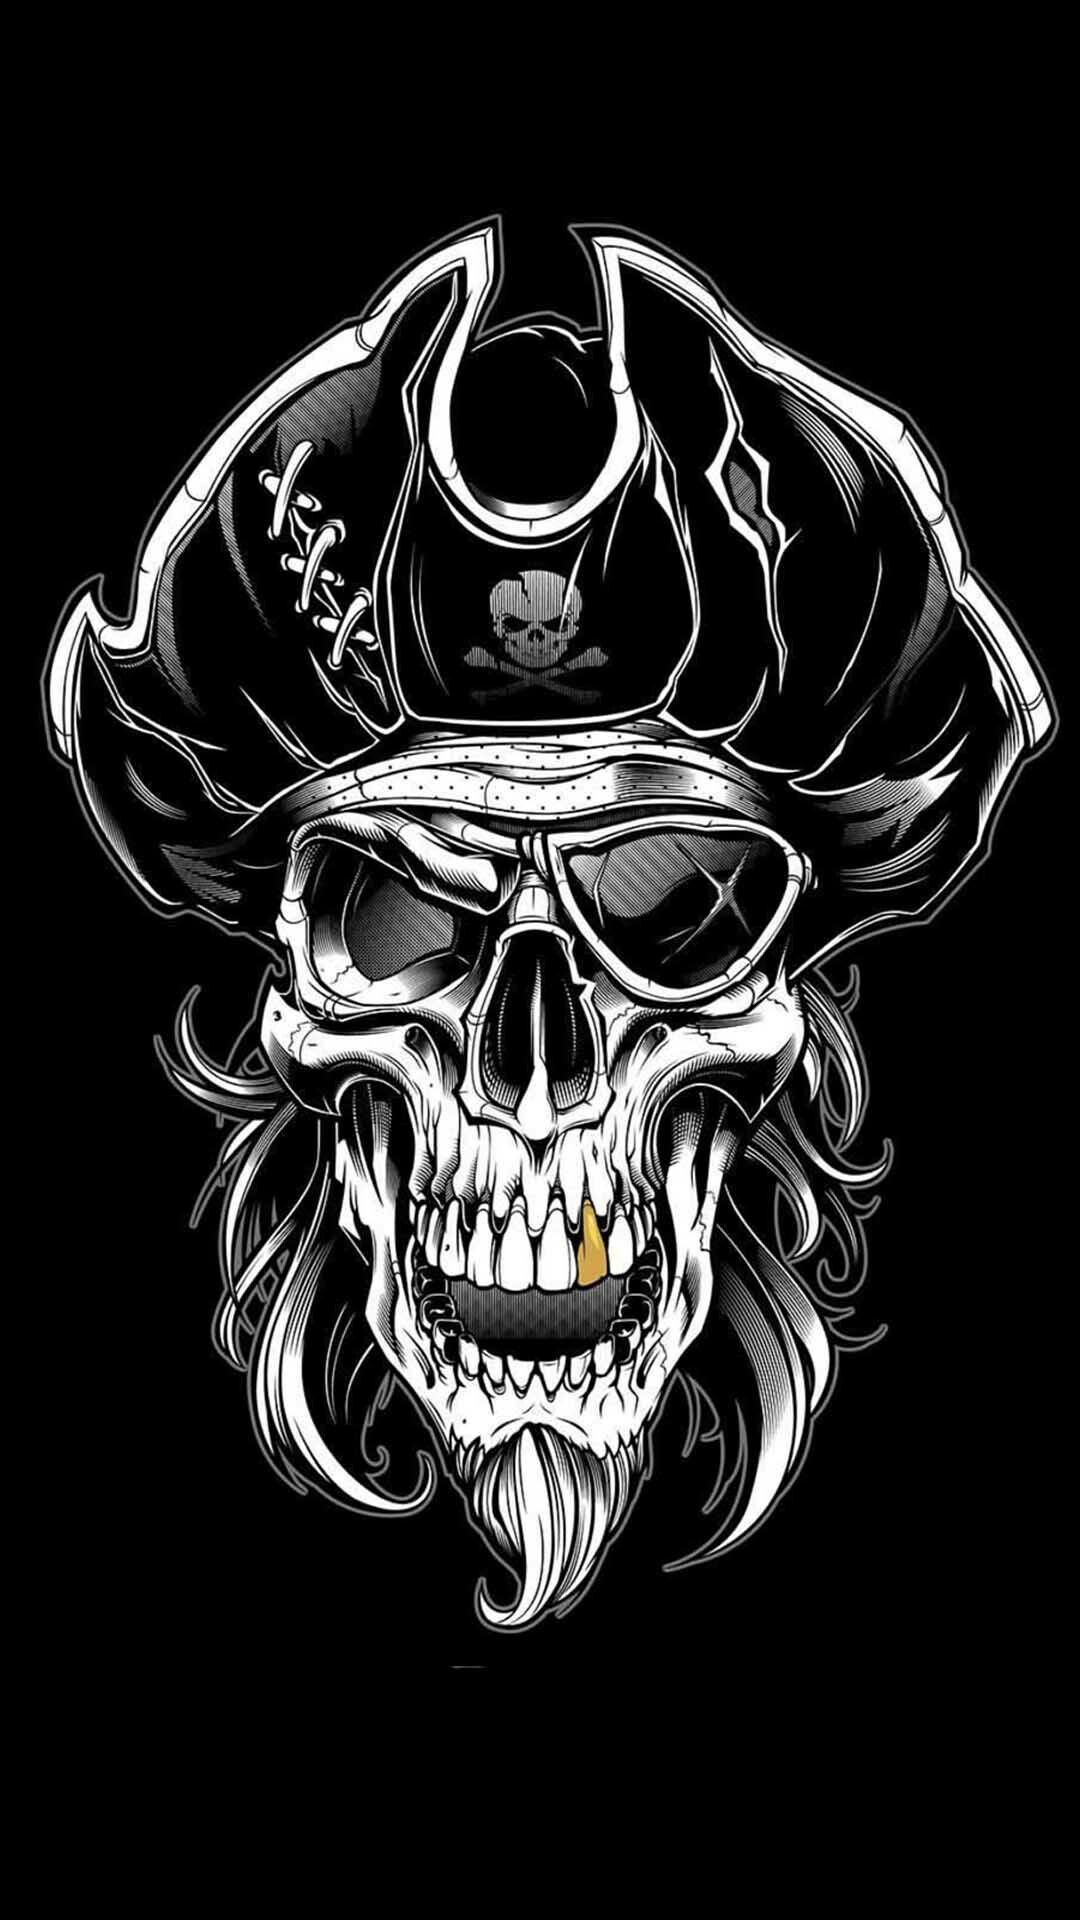 Pin By Hendie Purwiliarto On Phone Backgrounds Hipster 12 Pirate Skull Tattoos Skull Pictures Skull Wallpaper